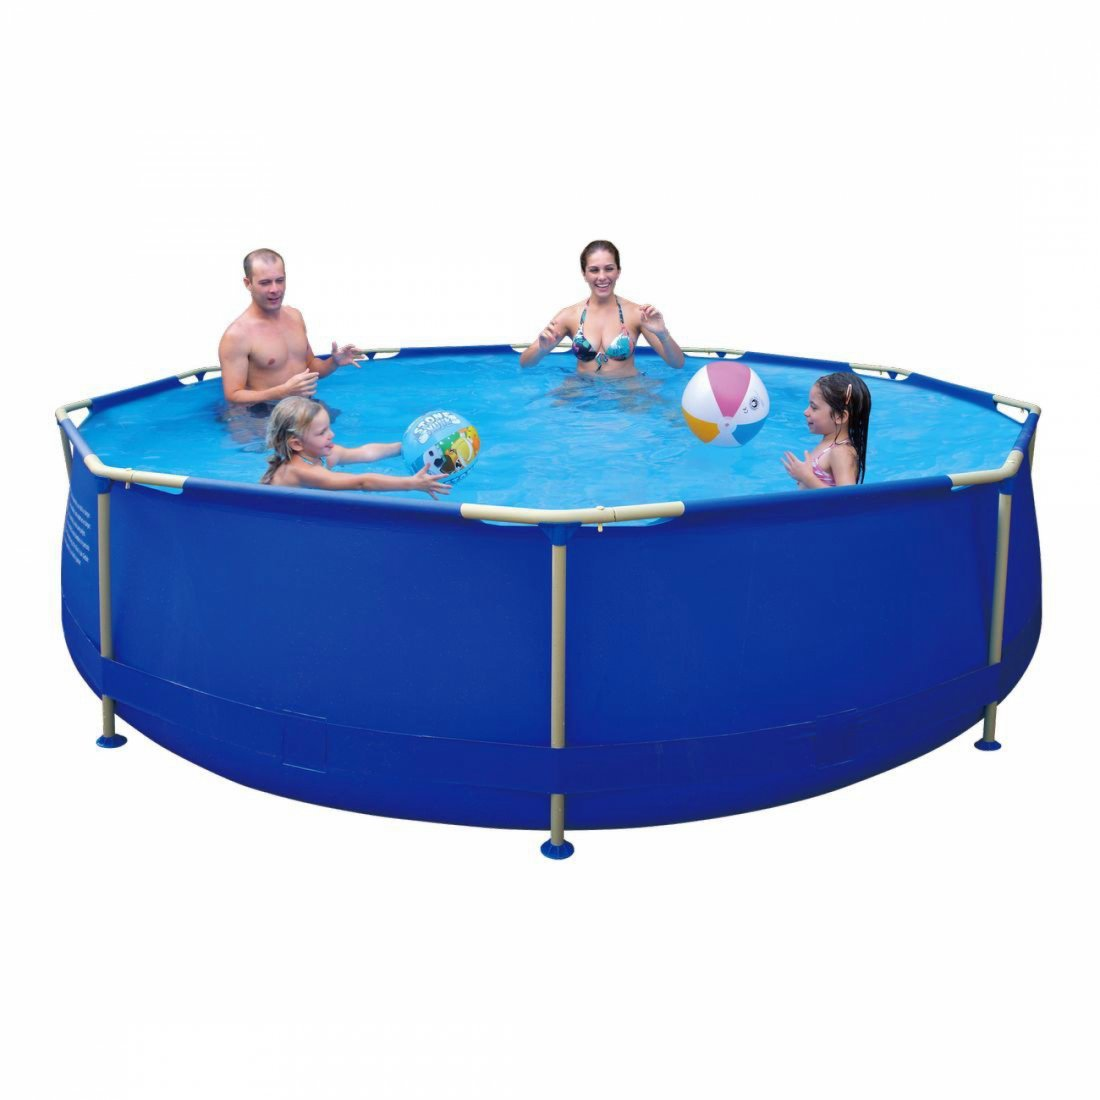 Jilong Sirocco Blue 360 – Steel Frame Round Pool, Blue, 360 x 360 x 30 6125, L, 17236